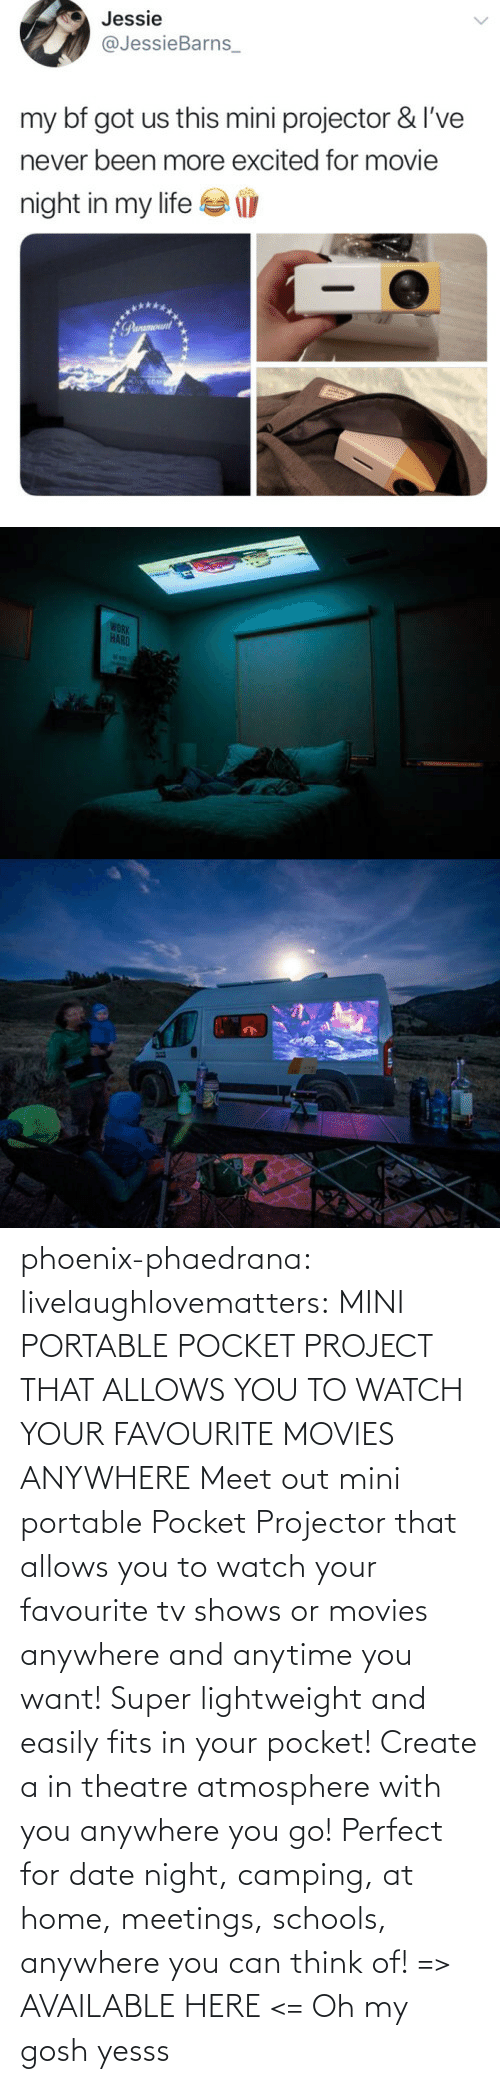 Movies, Tumblr, and TV Shows: phoenix-phaedrana: livelaughlovematters:  MINI PORTABLE POCKET PROJECT THAT ALLOWS YOU TO WATCH YOUR FAVOURITE MOVIES ANYWHERE Meet out mini portable Pocket Projector that allows you to watch your favourite tv shows or movies anywhere and anytime you want! Super lightweight and easily fits in your pocket! Create a in theatre atmosphere with you anywhere you go! Perfect for date night, camping, at home, meetings, schools, anywhere you can think of! => AVAILABLE HERE <=  Oh my gosh yesss